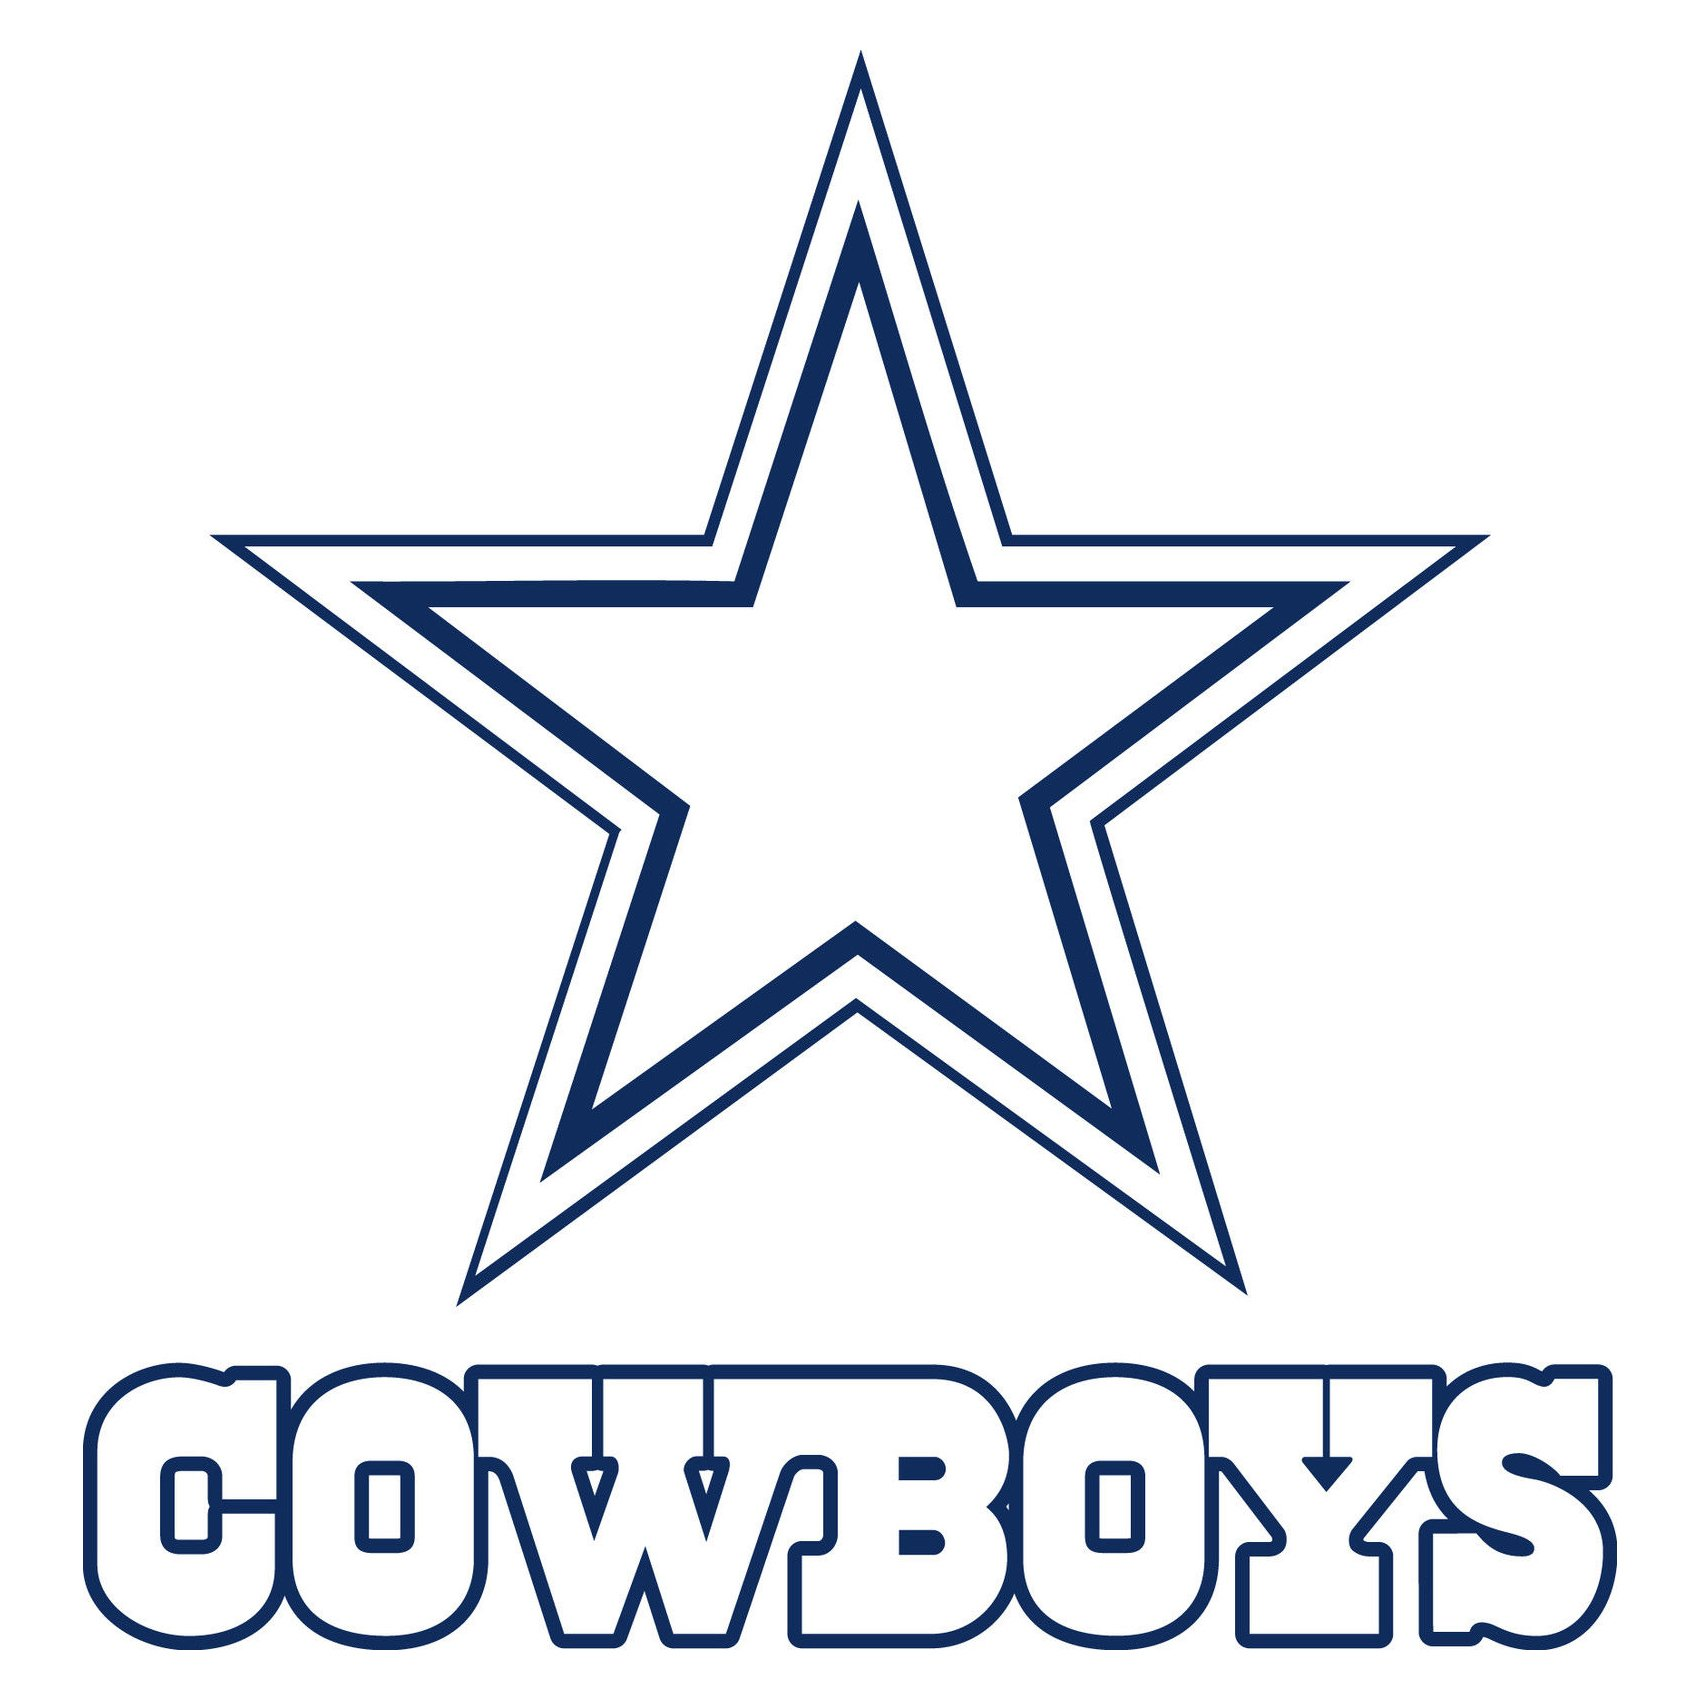 dallas cowboys logo  dallas cowboys symbol meaning Volleyball Player Silhouette Clip Art Cartoon Football Player Clip Art